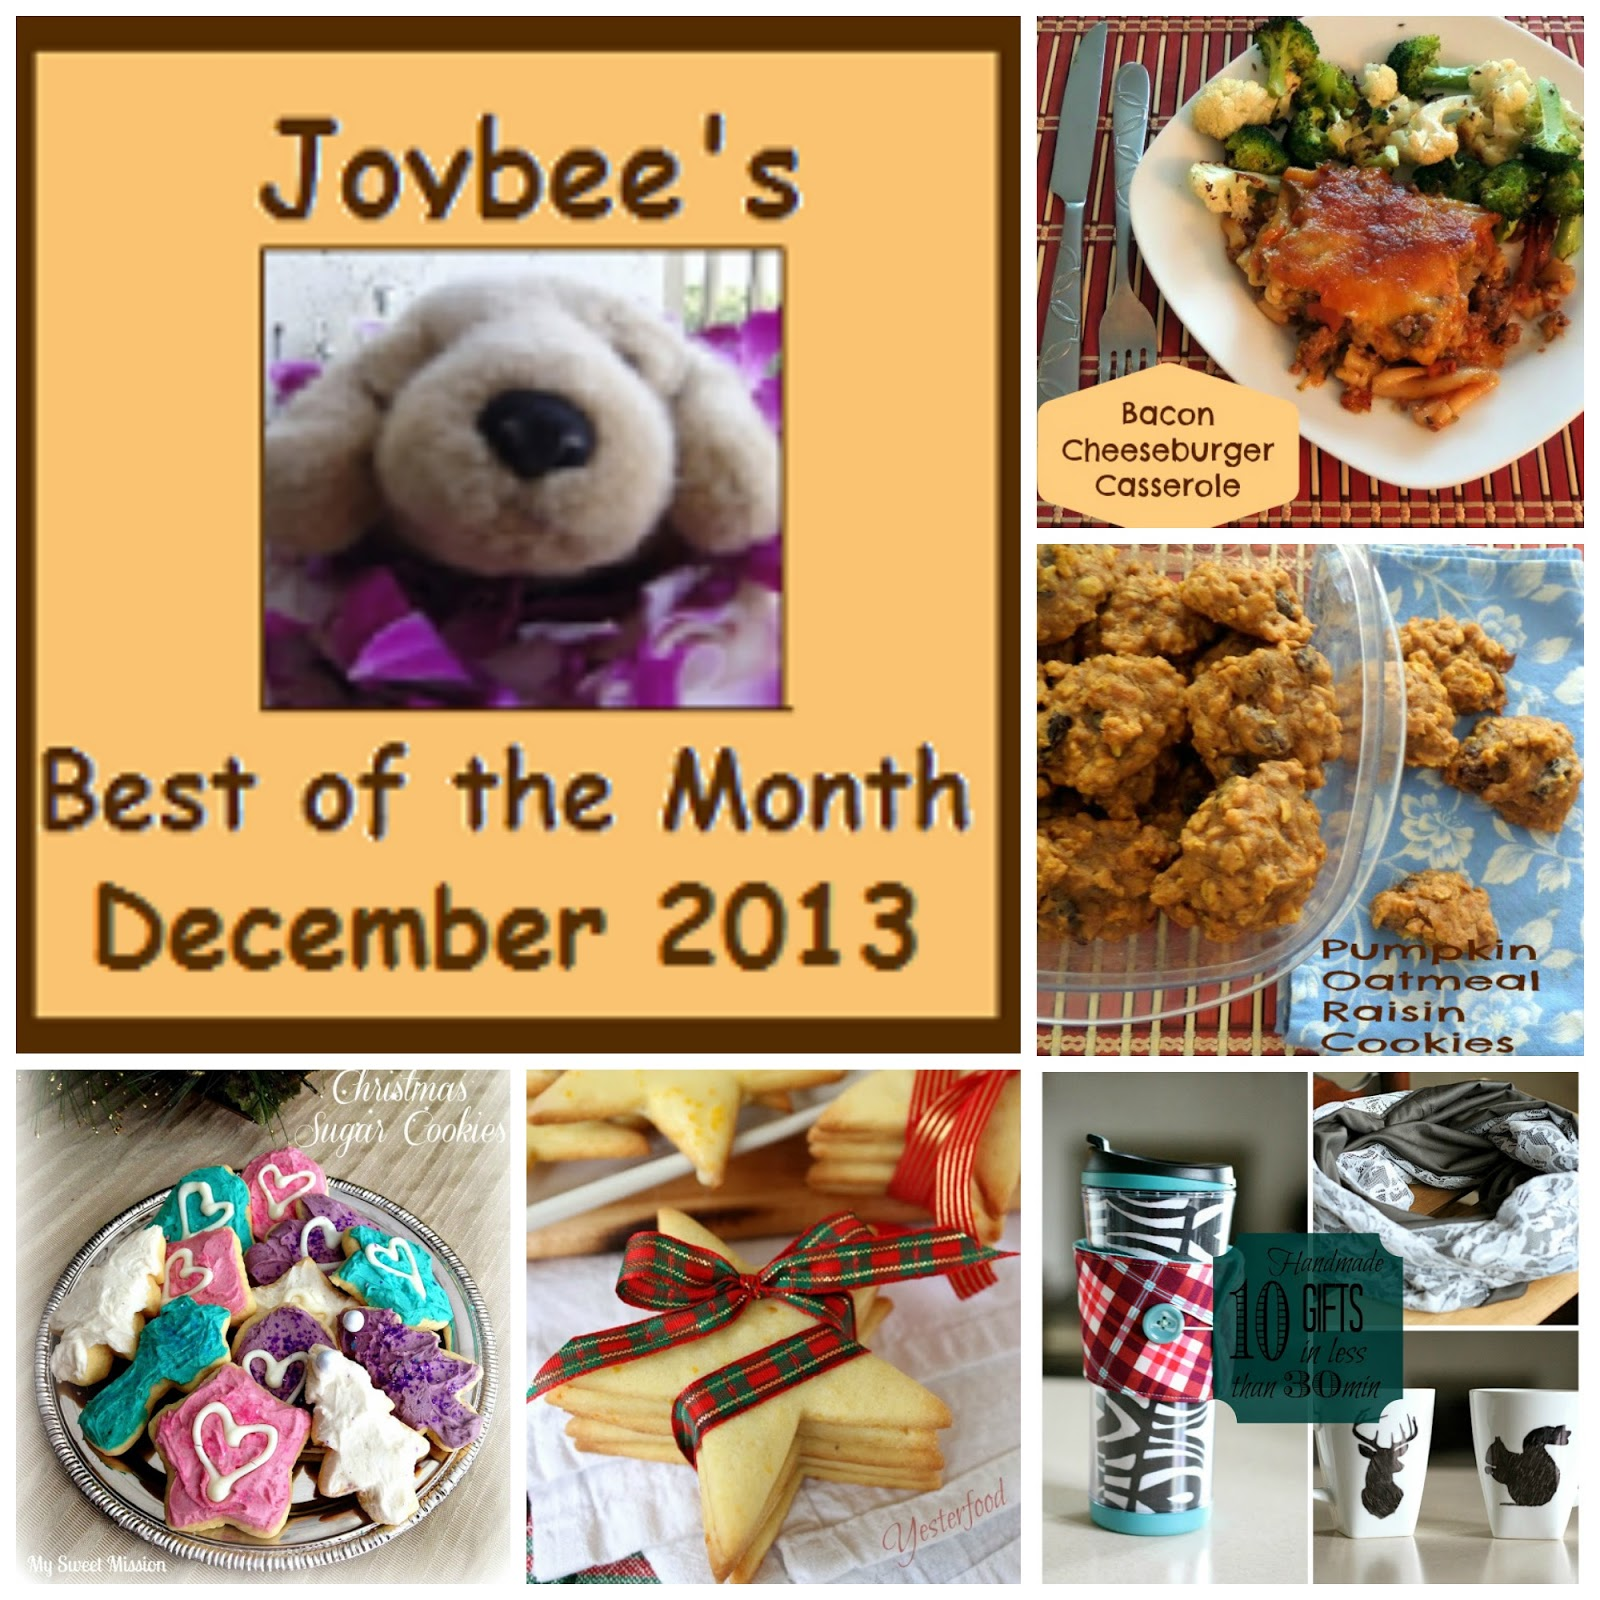 Best of the Month December 2013:  A review of my most popular blog posts from December.